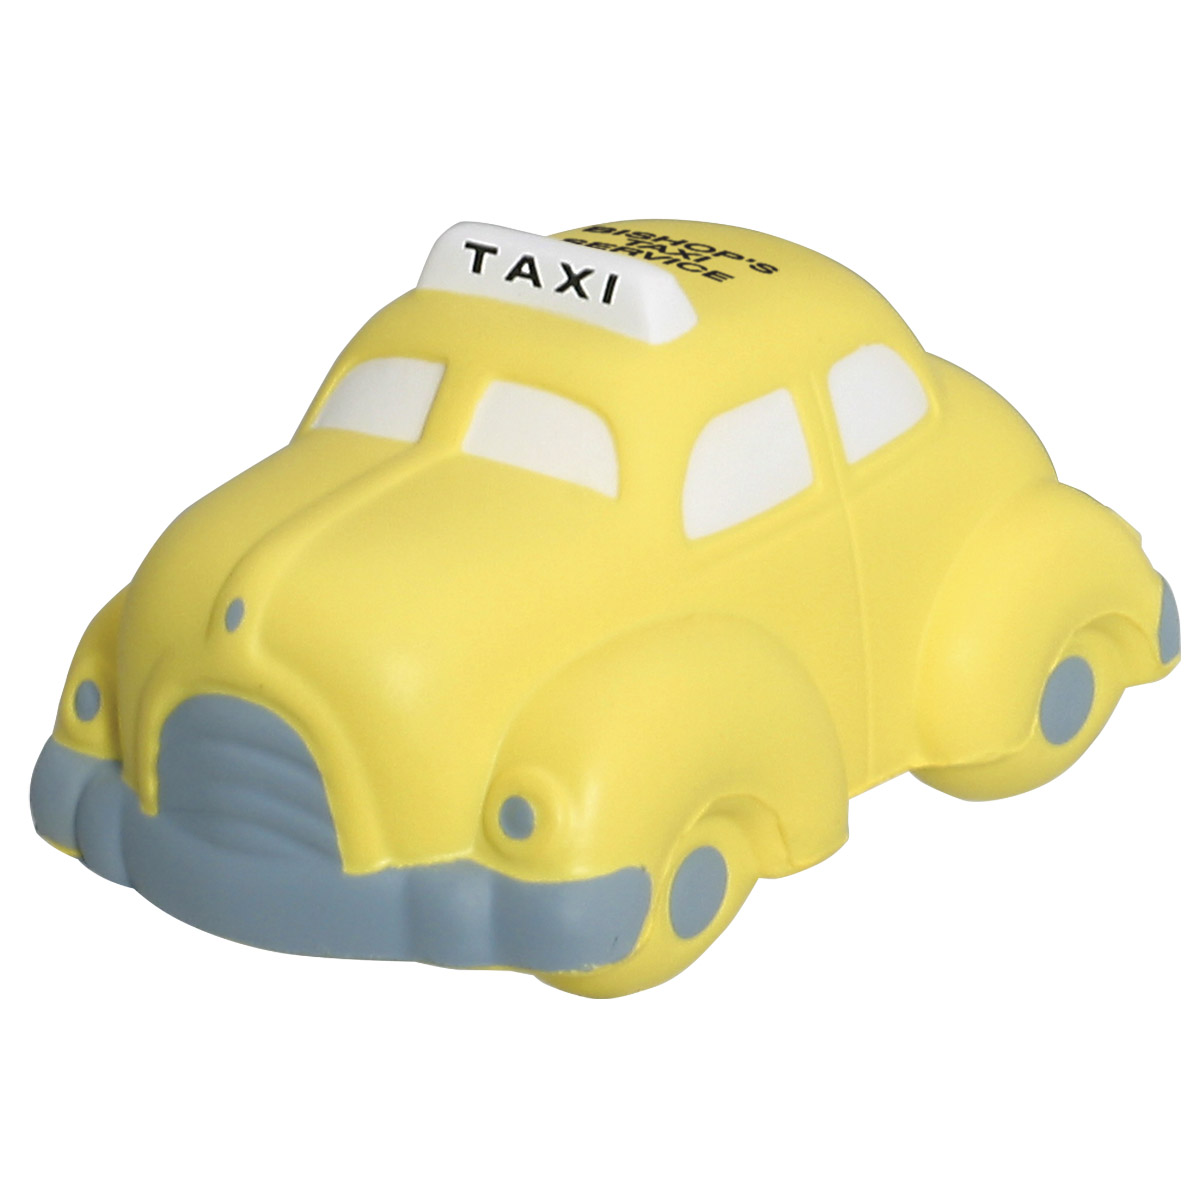 Taxi Stress Reliever, LTR-TX31 - 1 Colour Imprint